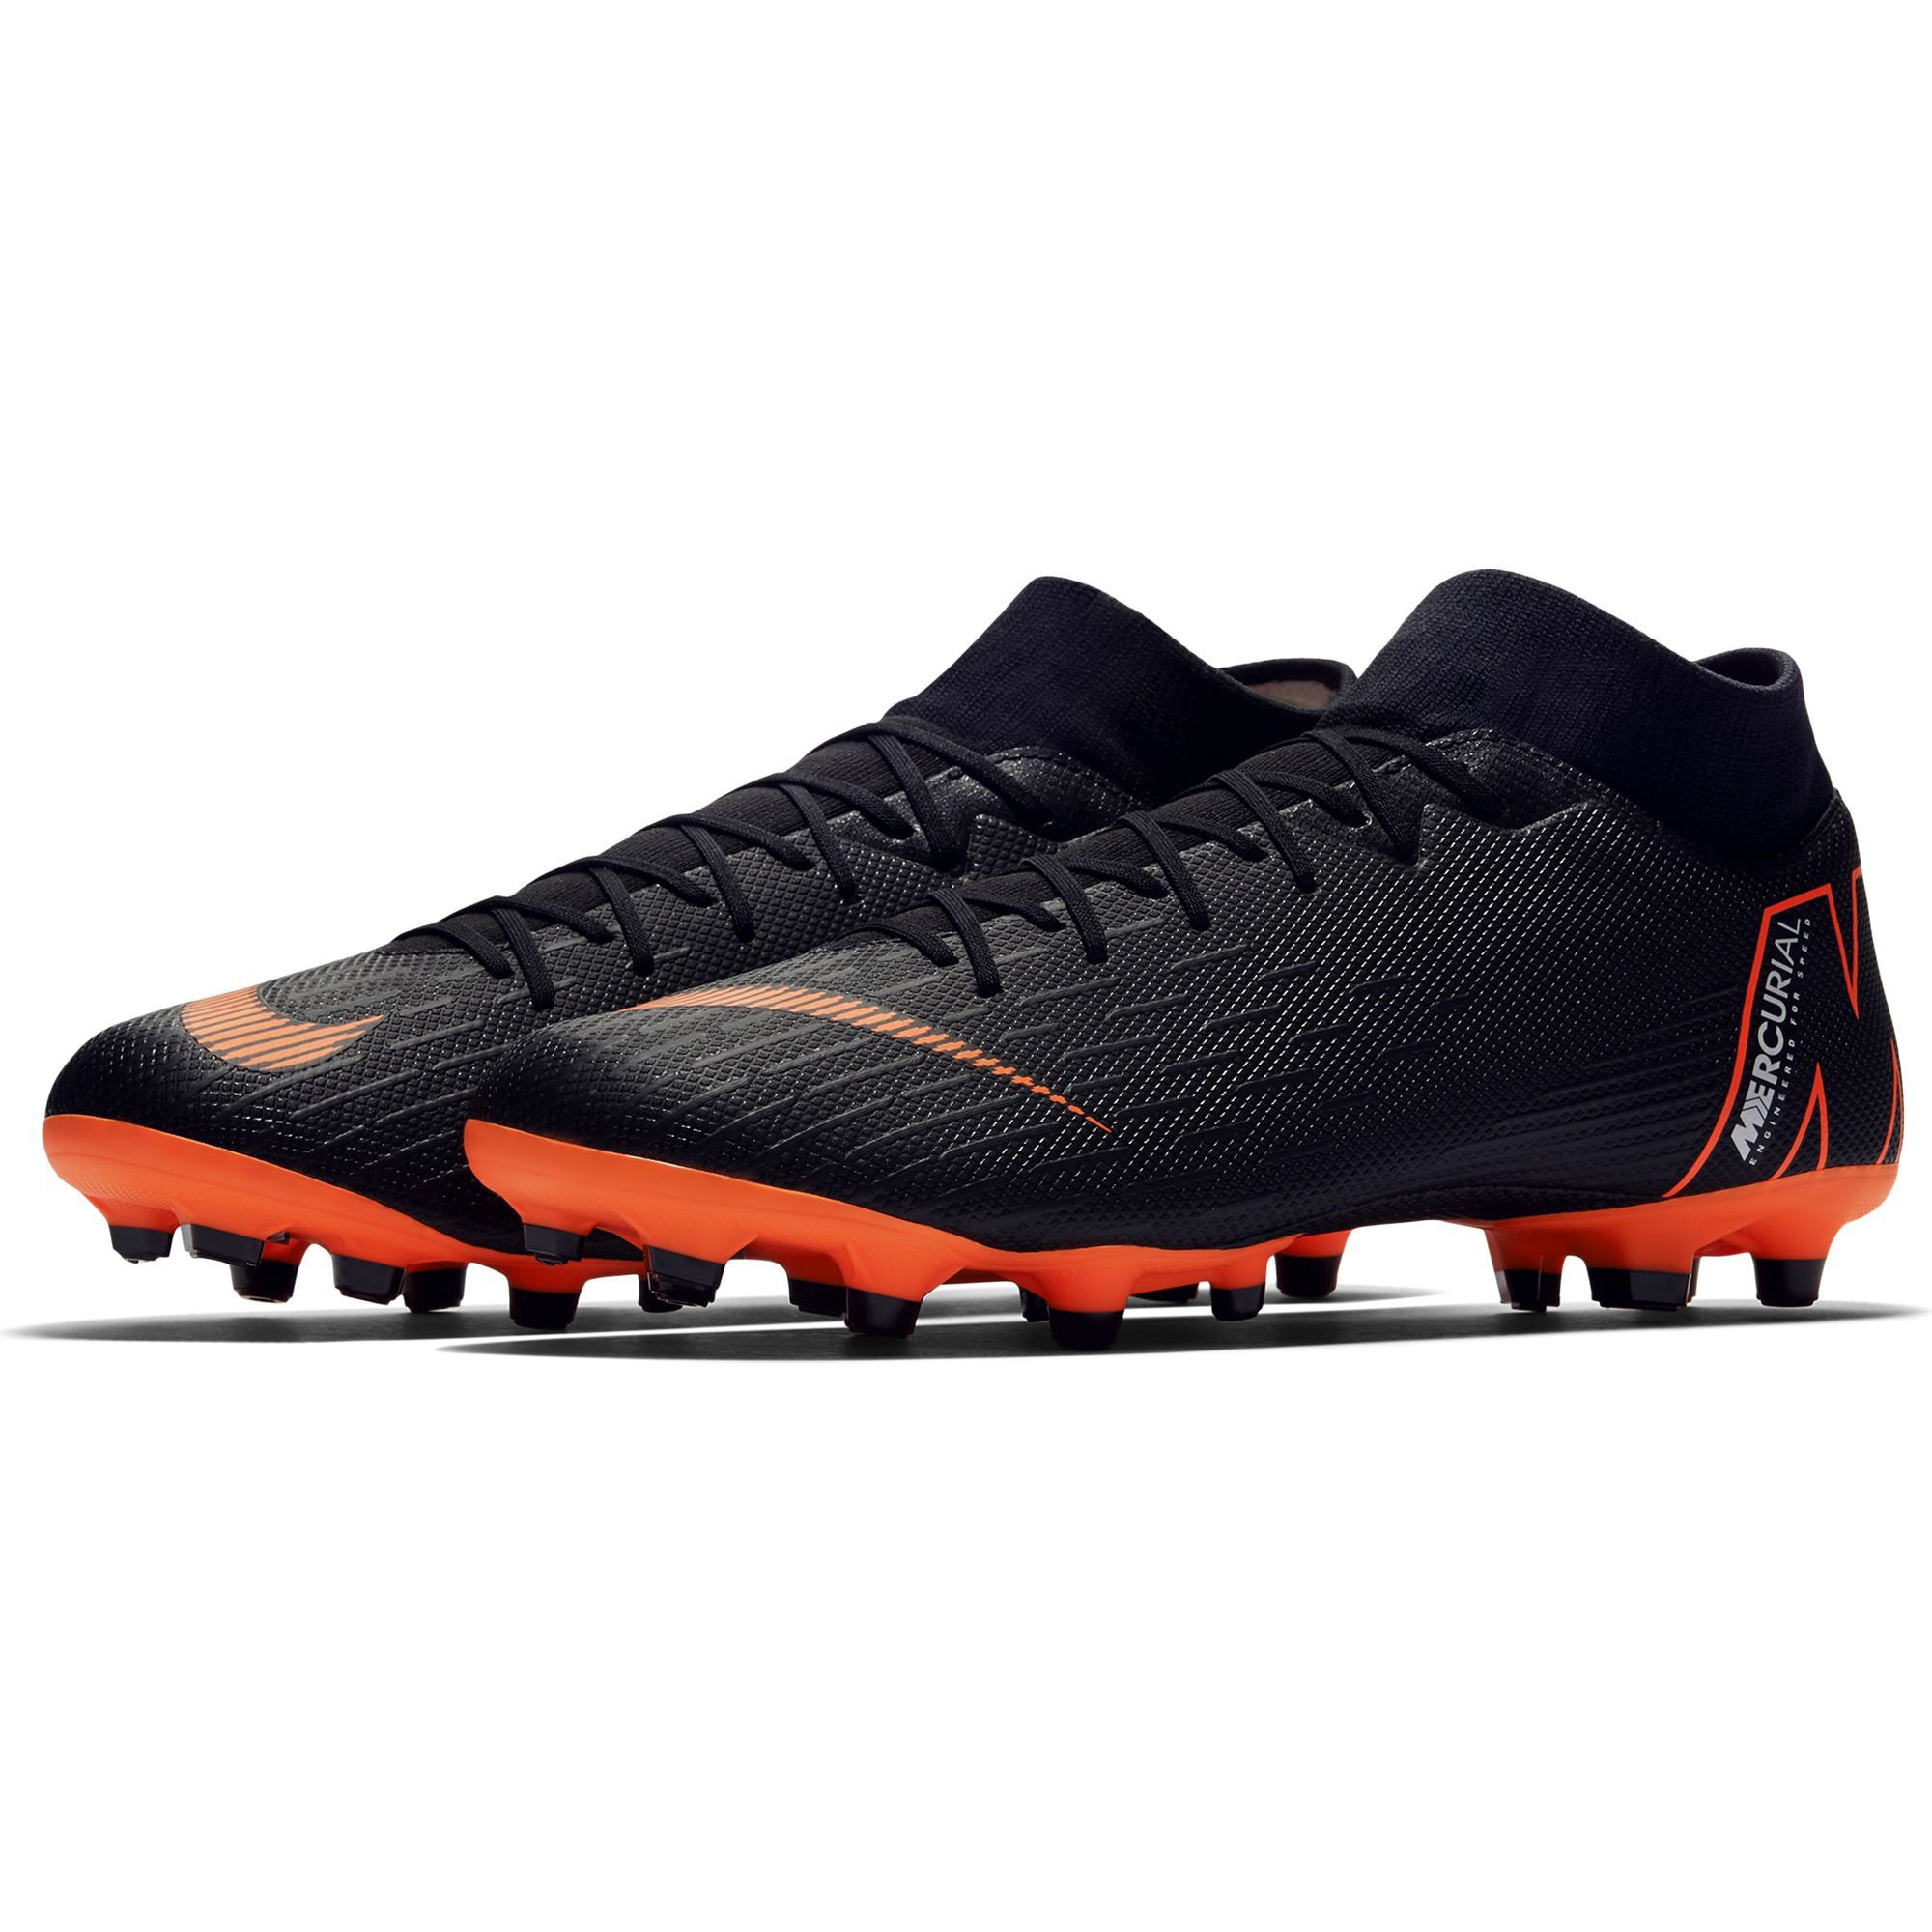 hot sale online 29480 c20e9 Galleon - Nike Men s Superfly 6 Academy MG Multi-Ground Soccer Cleat, Black Total  Orange-White, 9.5